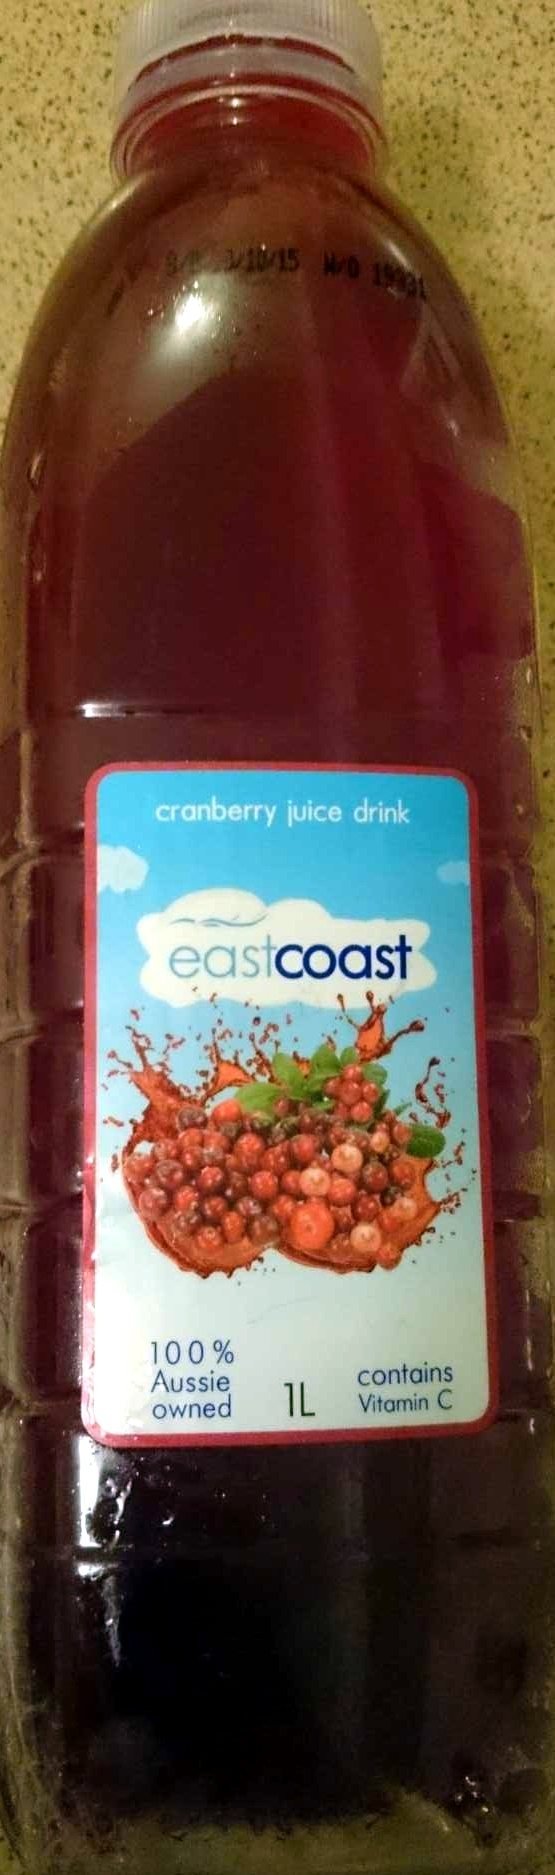 Cranberry Juice Drink - Product - en